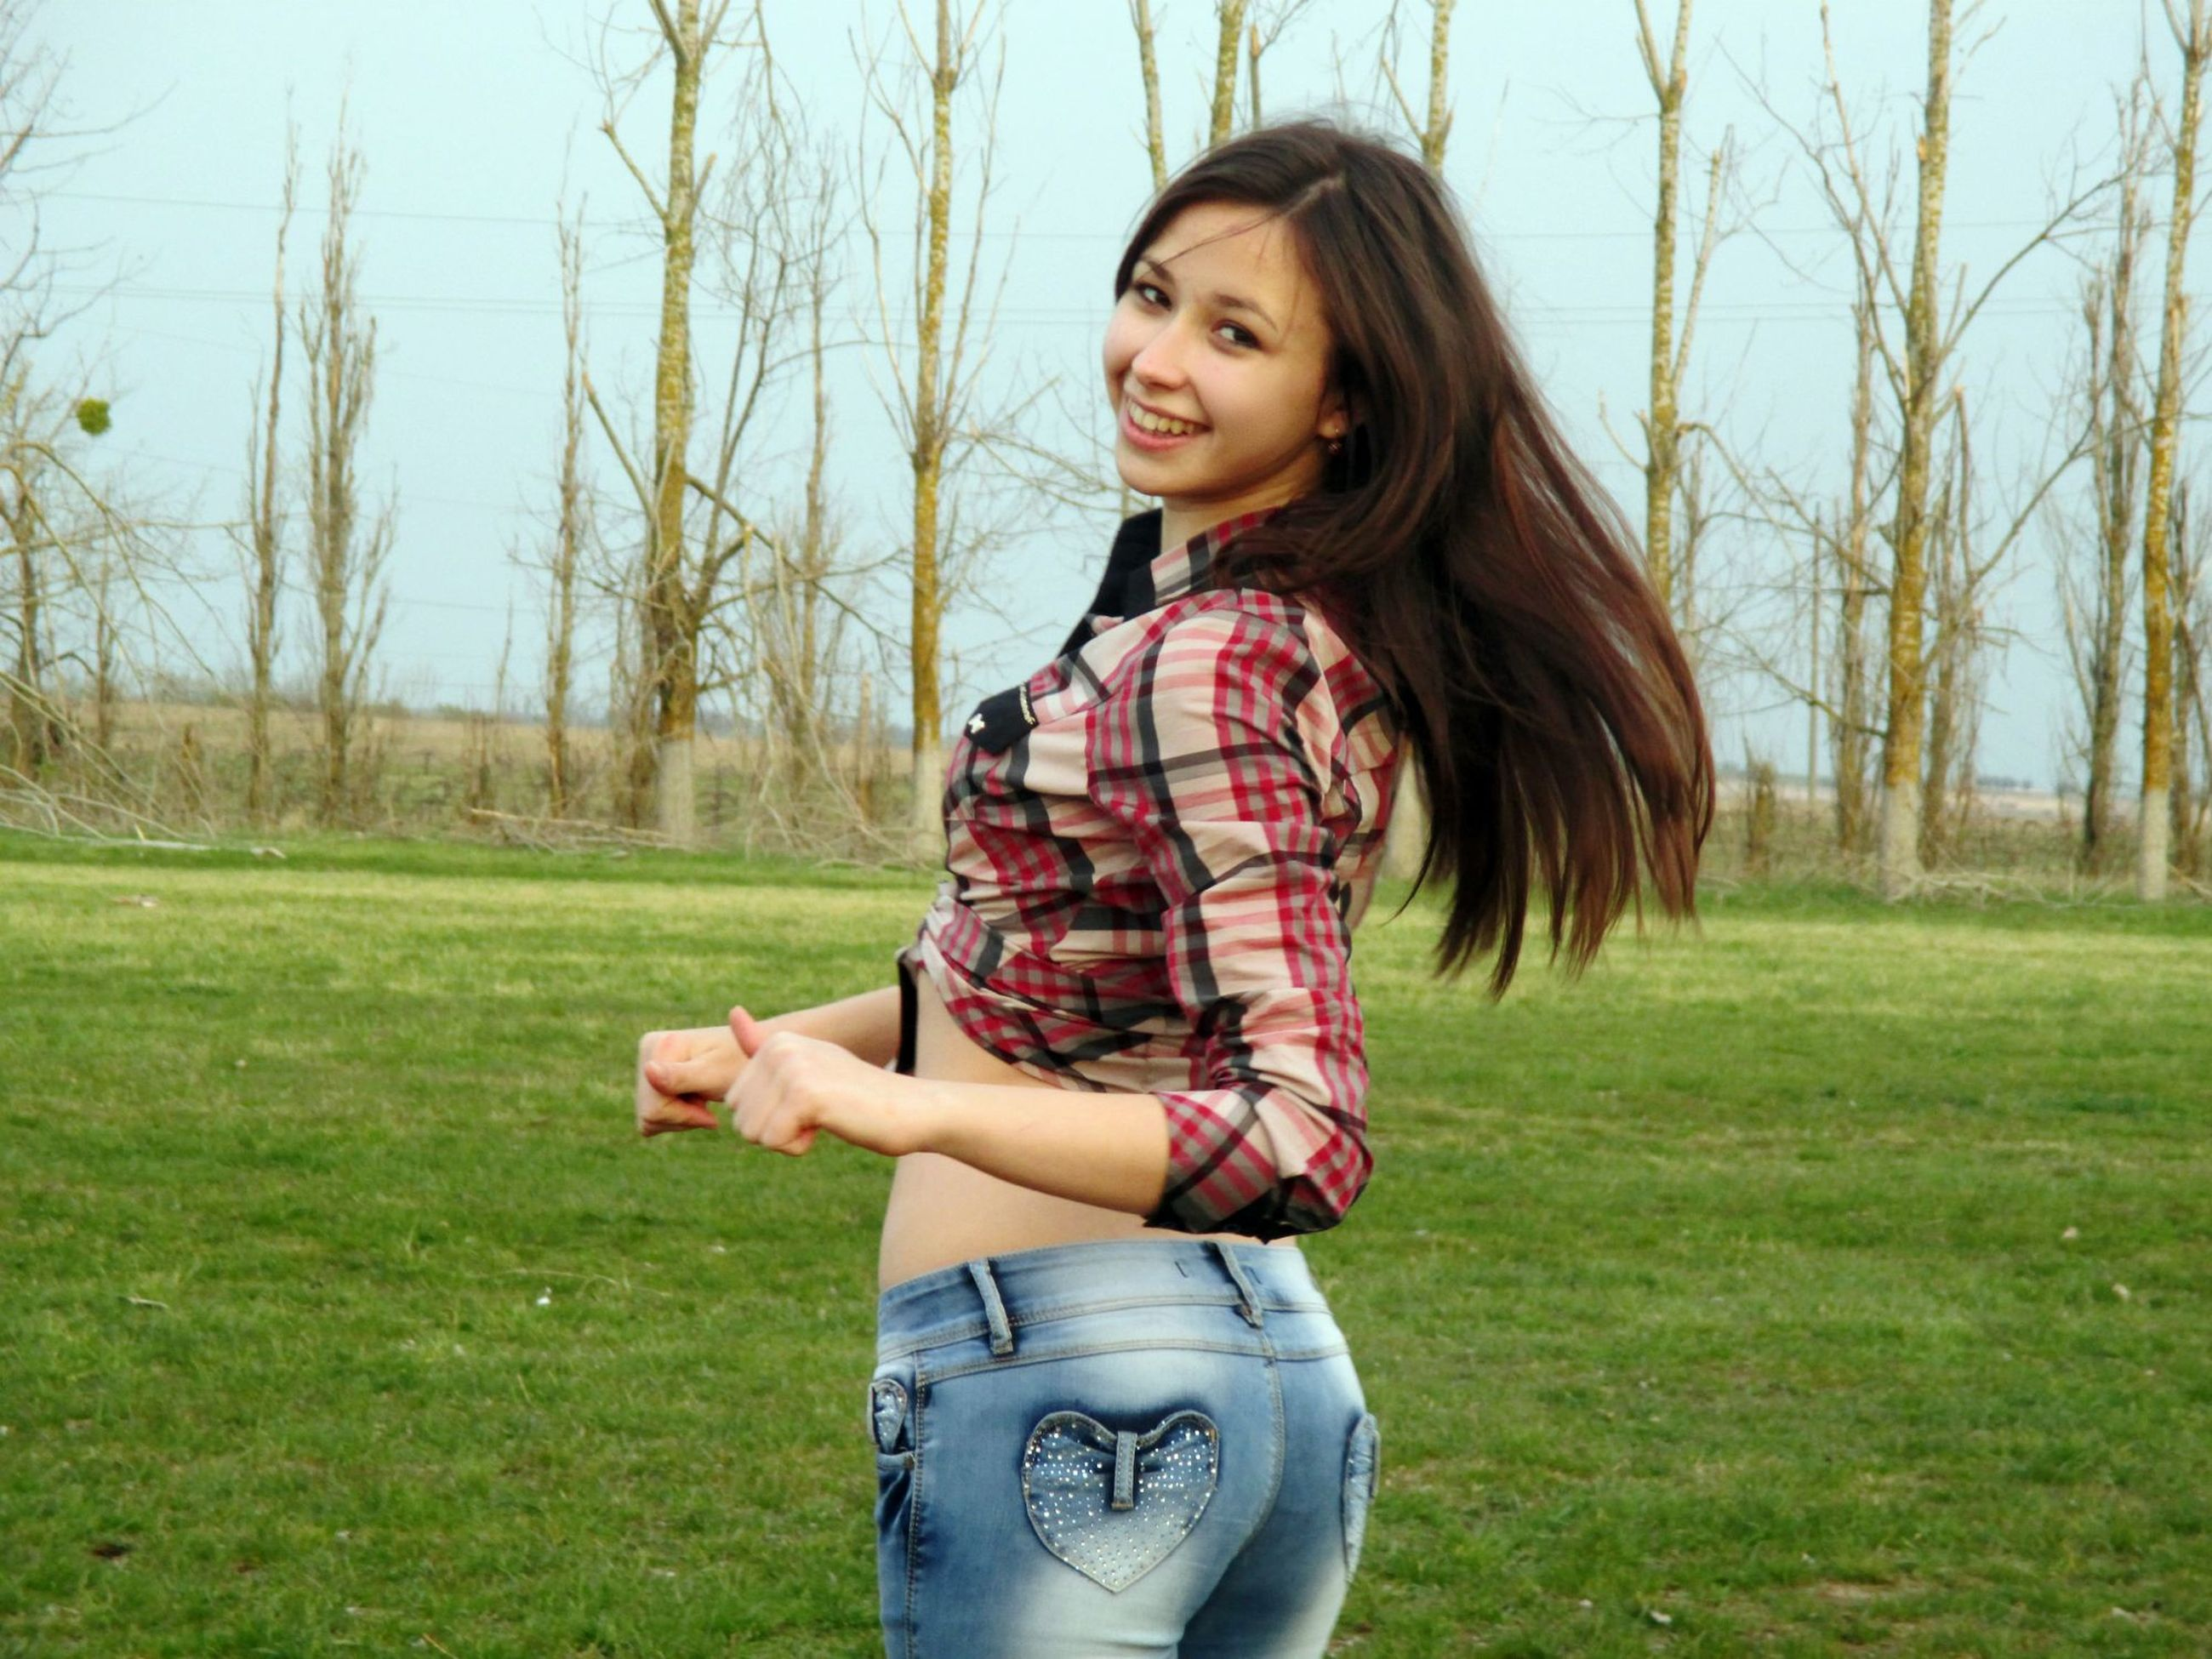 person, grass, young adult, casual clothing, lifestyles, young women, portrait, looking at camera, leisure activity, smiling, long hair, front view, grassy, three quarter length, standing, happiness, tree